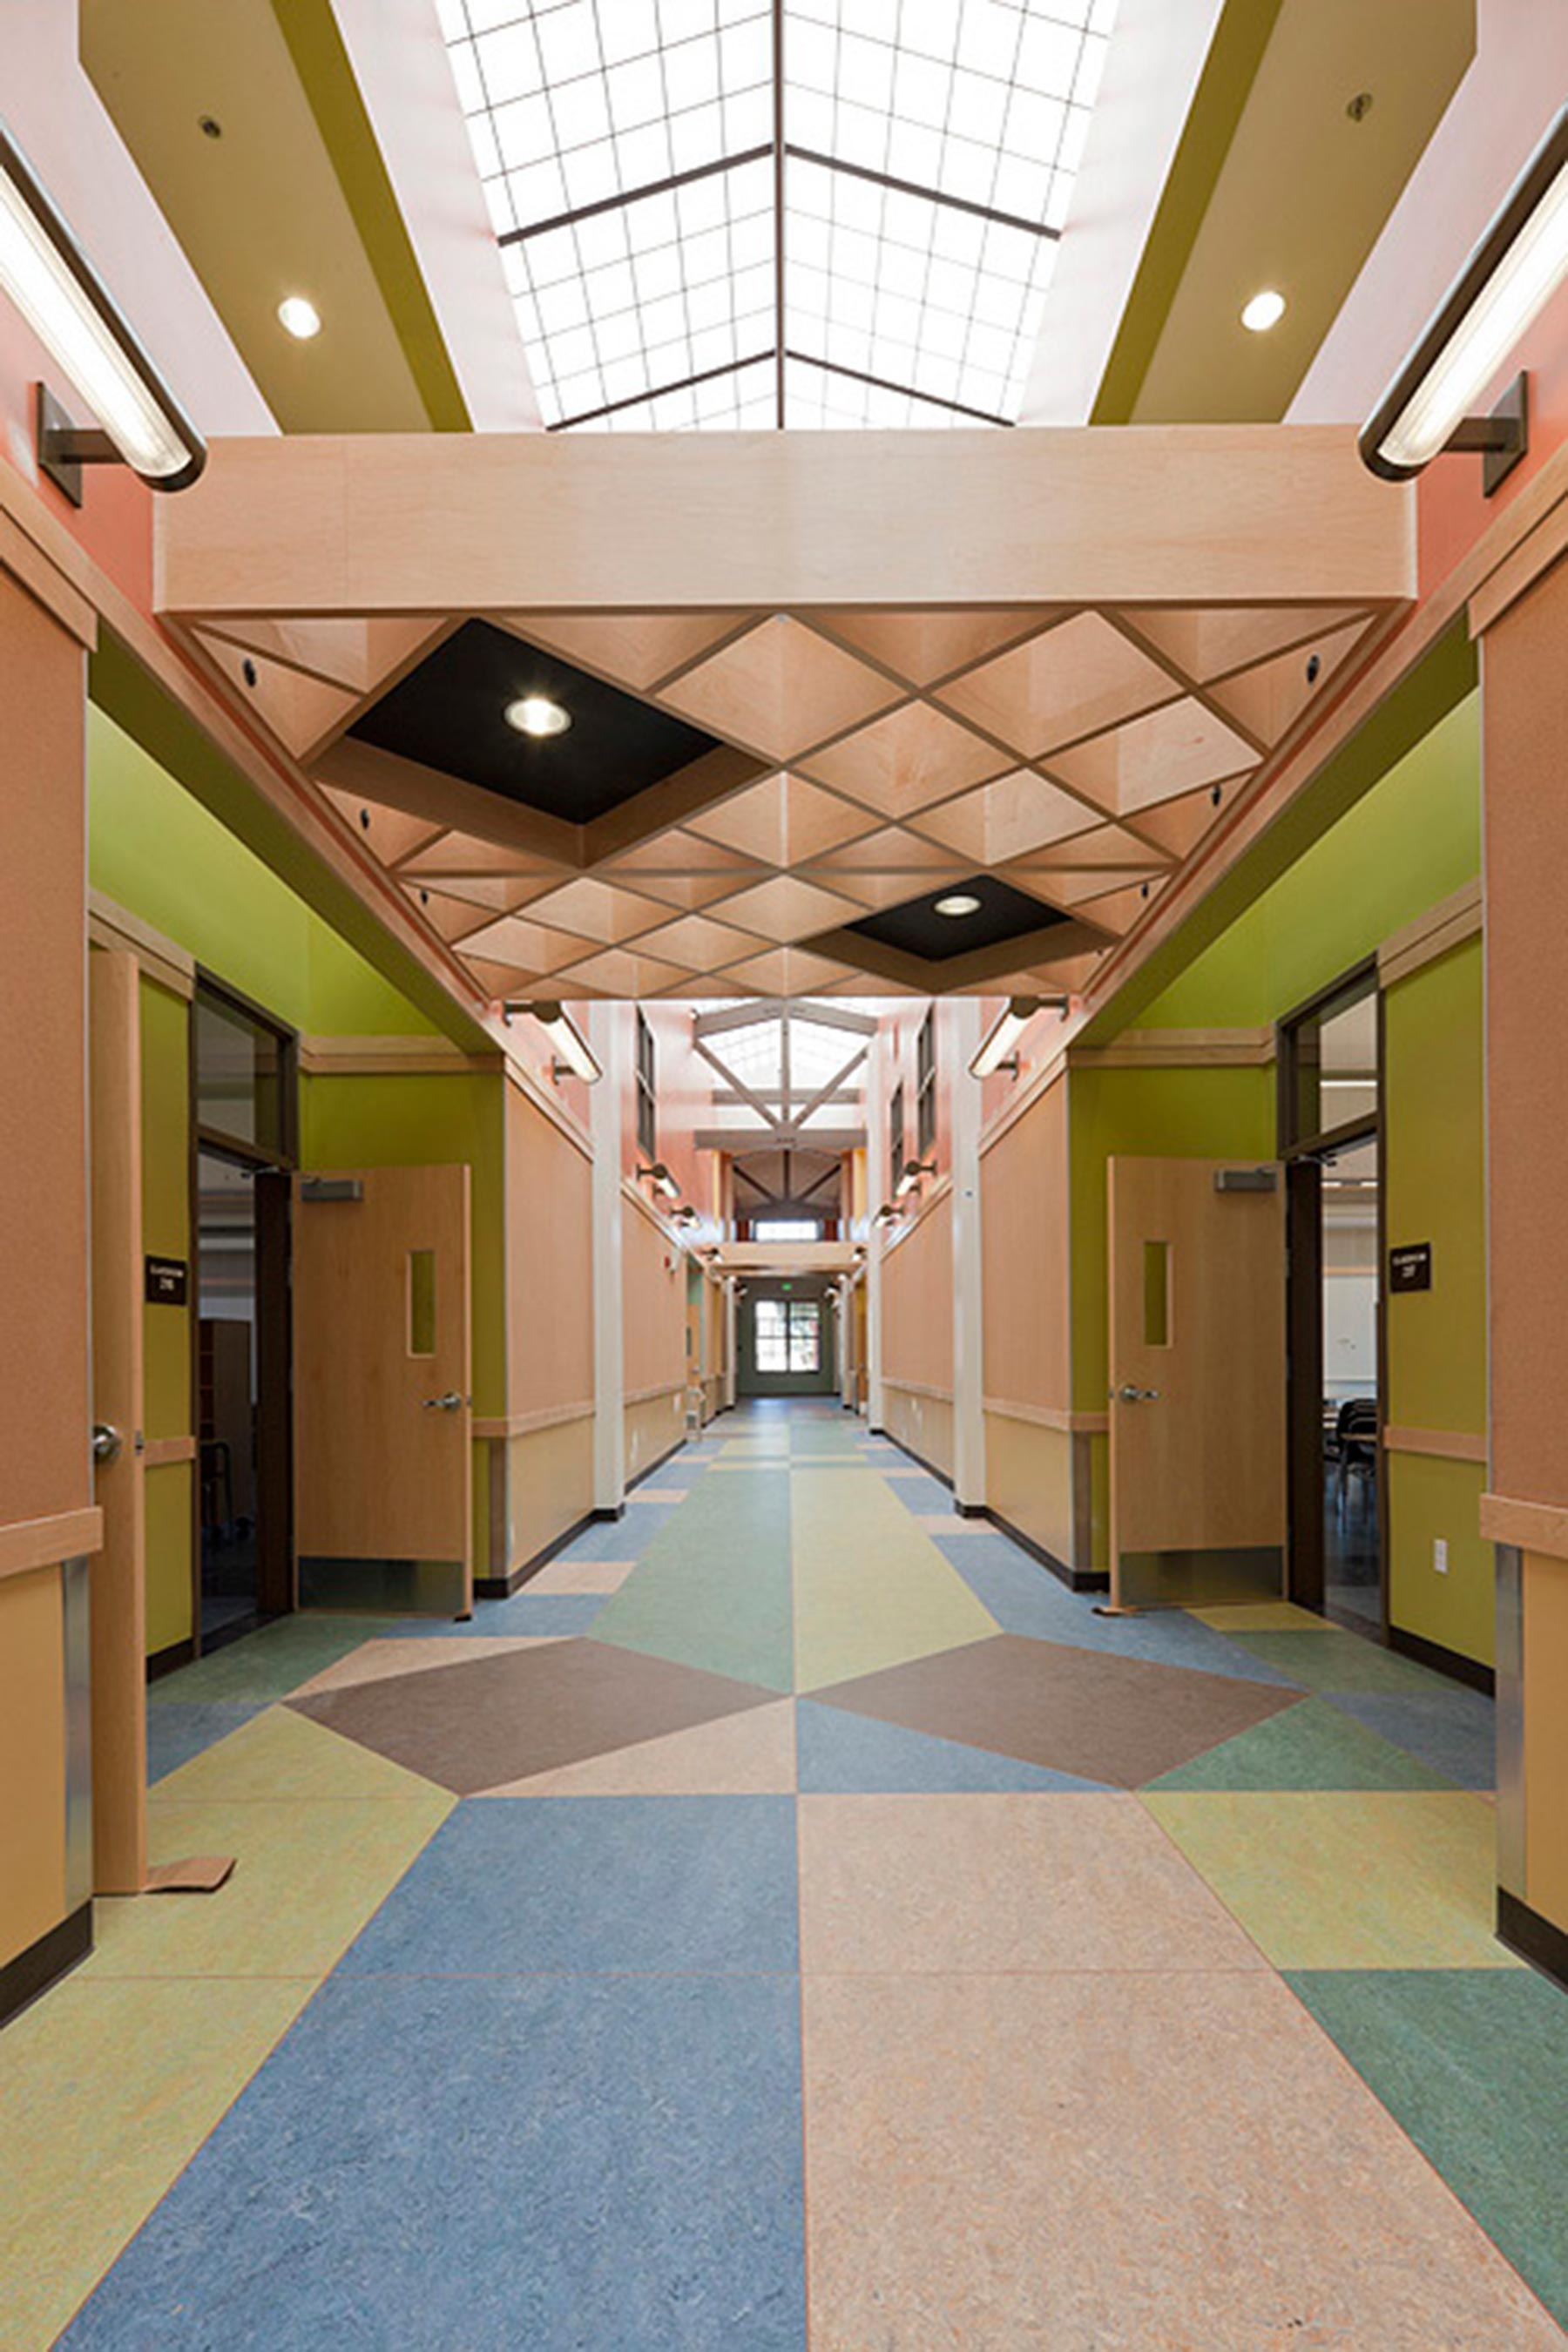 New Construction - Ford Elementary School Interior